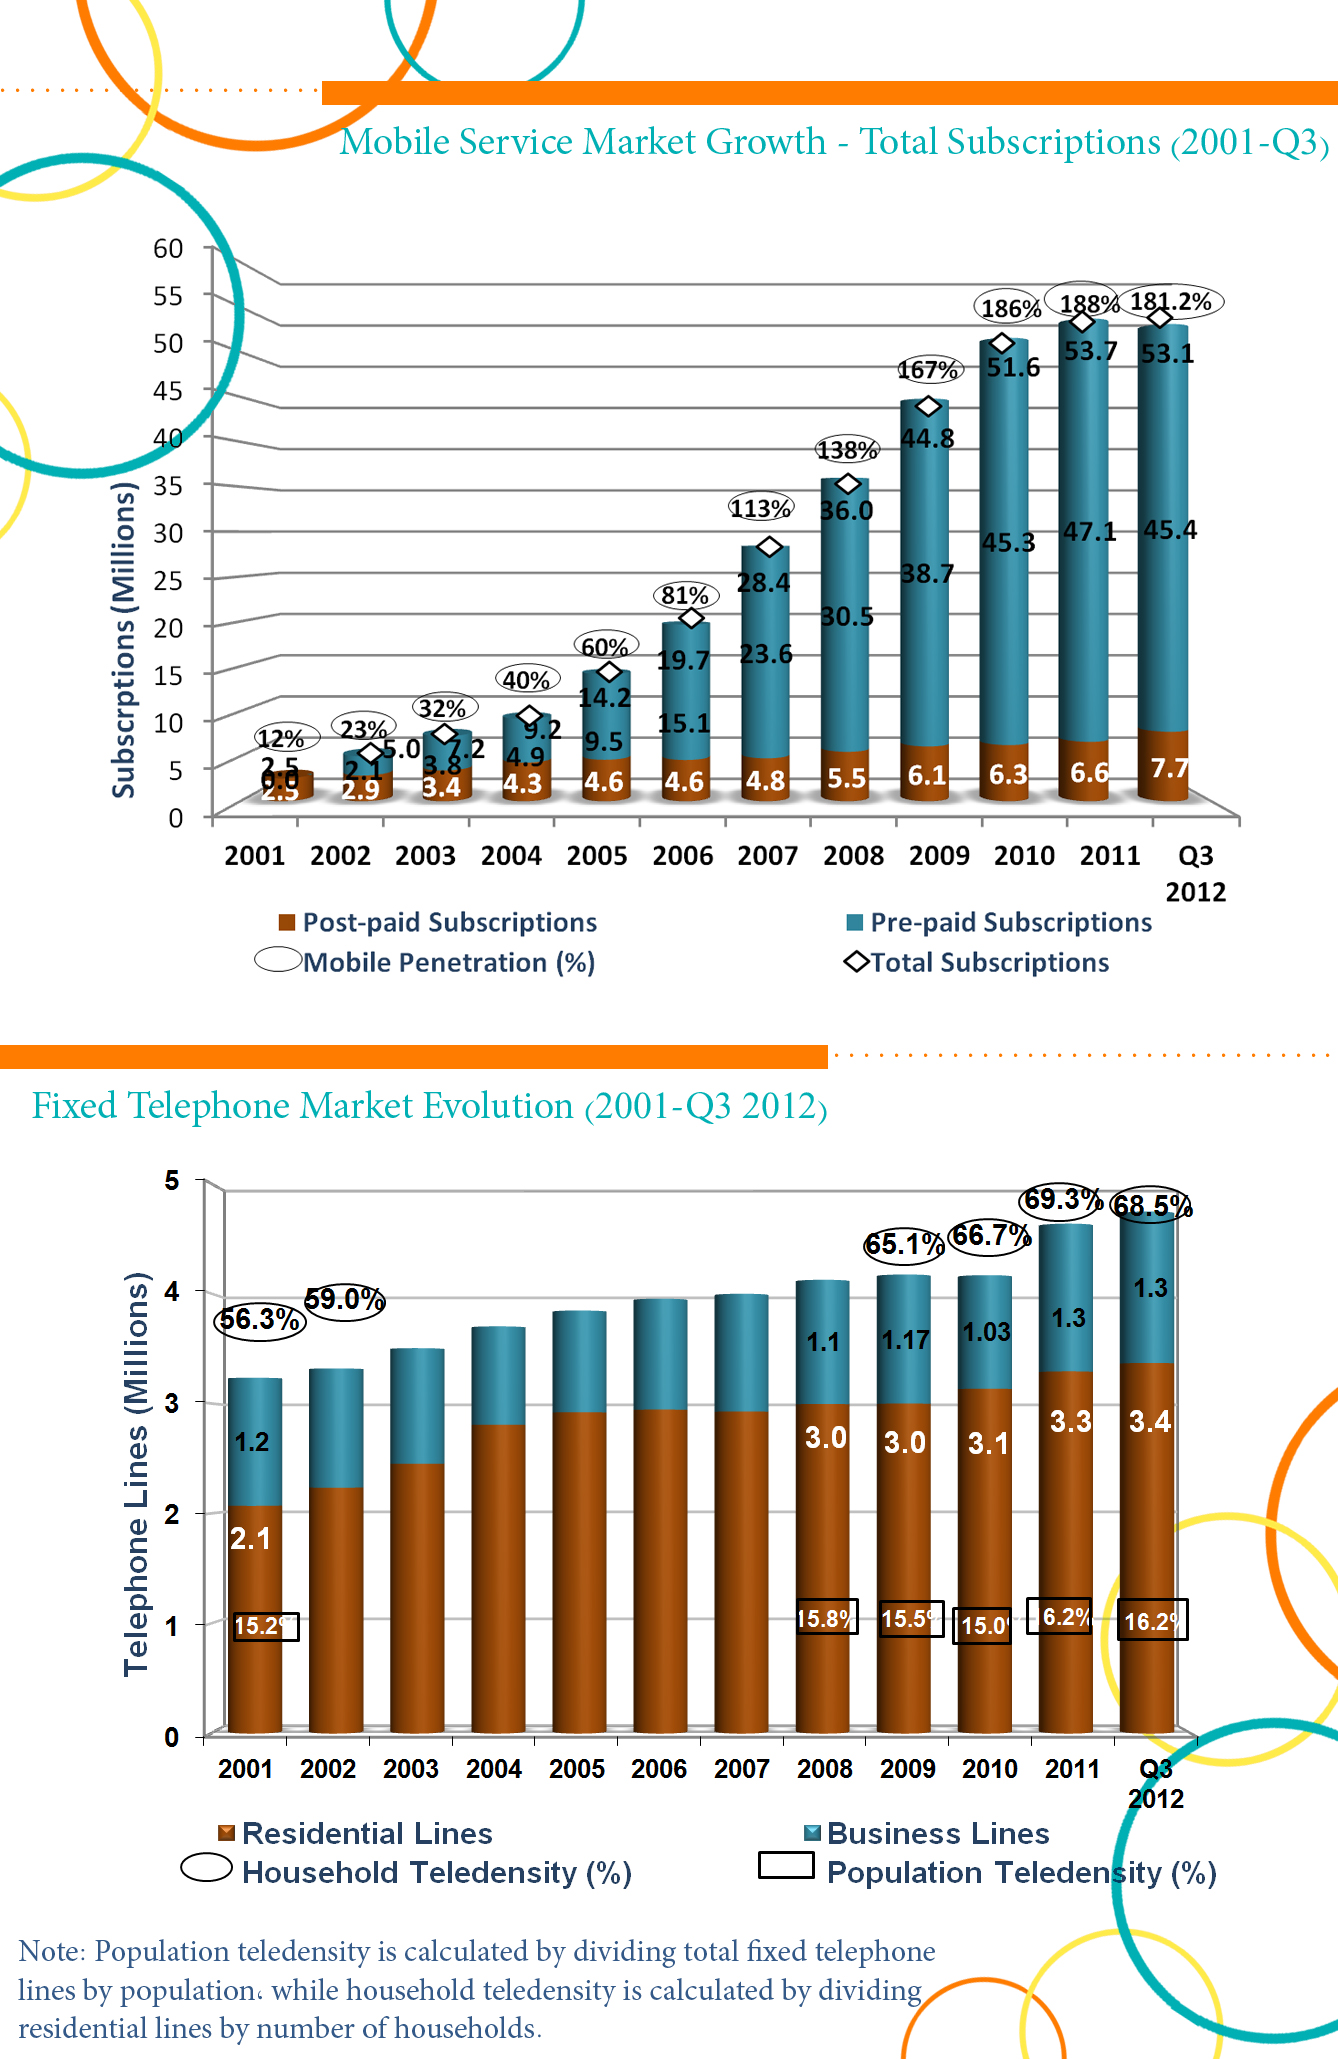 531 Million Mobile Subscriptions At The End Of Q3 2012 In Ksa